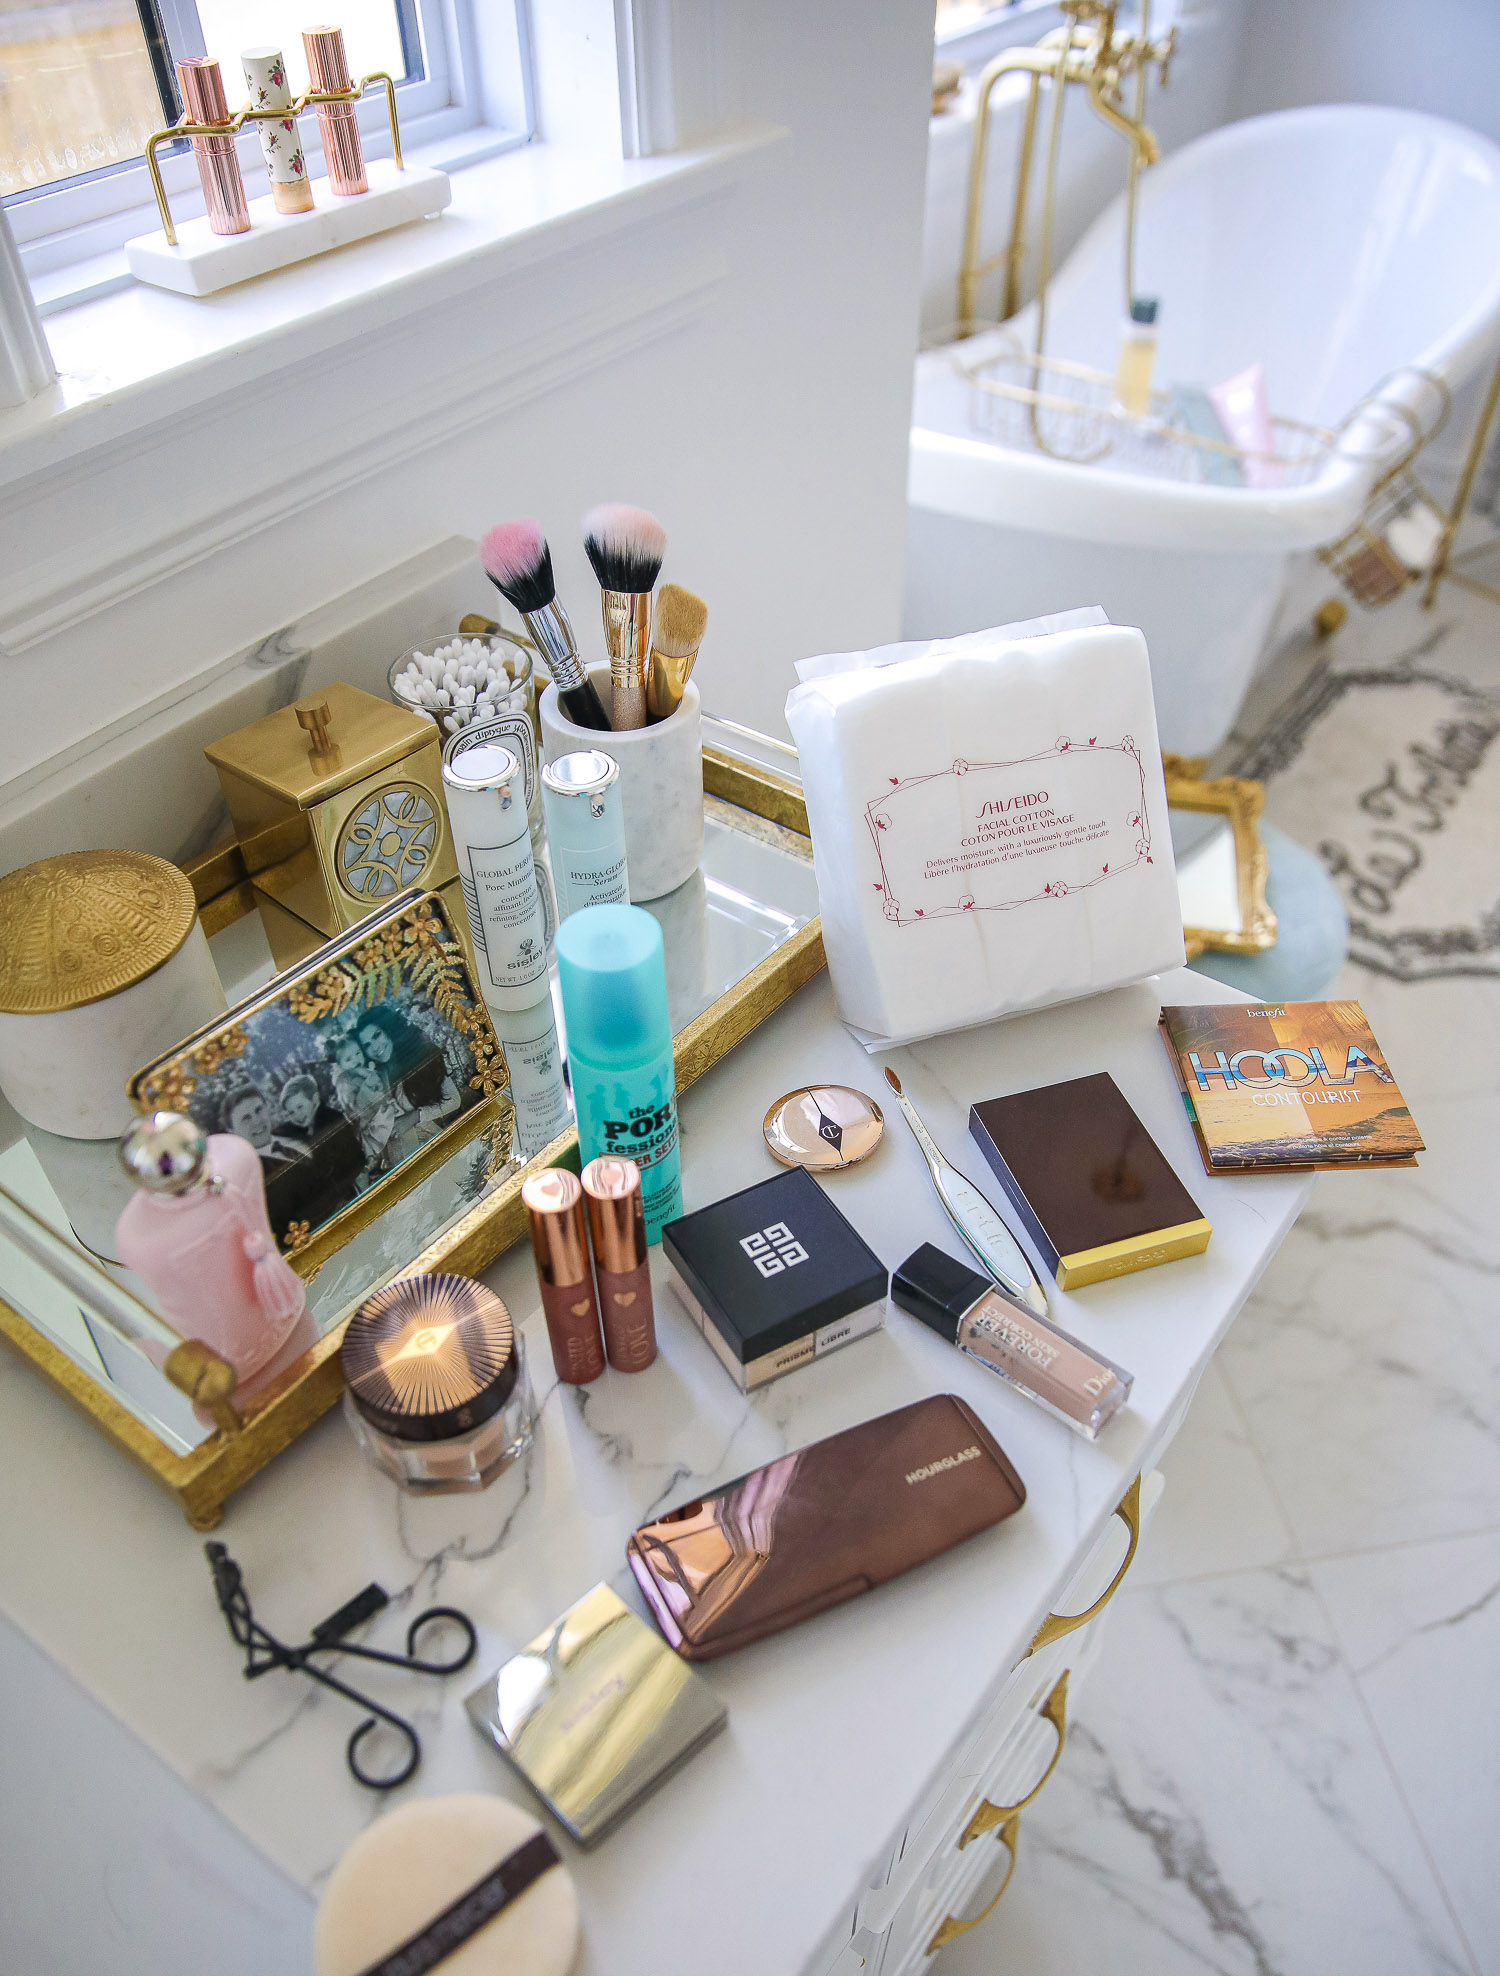 nordstrom beauty must haves fall 2021, sisley pore minimizer review, sisley blur powder review, sisley hyaluronic acid, emily gemma beauty must haves, hoola bronzer palette |  Beauty Favorites by popular US beauty blog, The Sweetest Thing: image of various beauty products spread across a white marble vanity top.